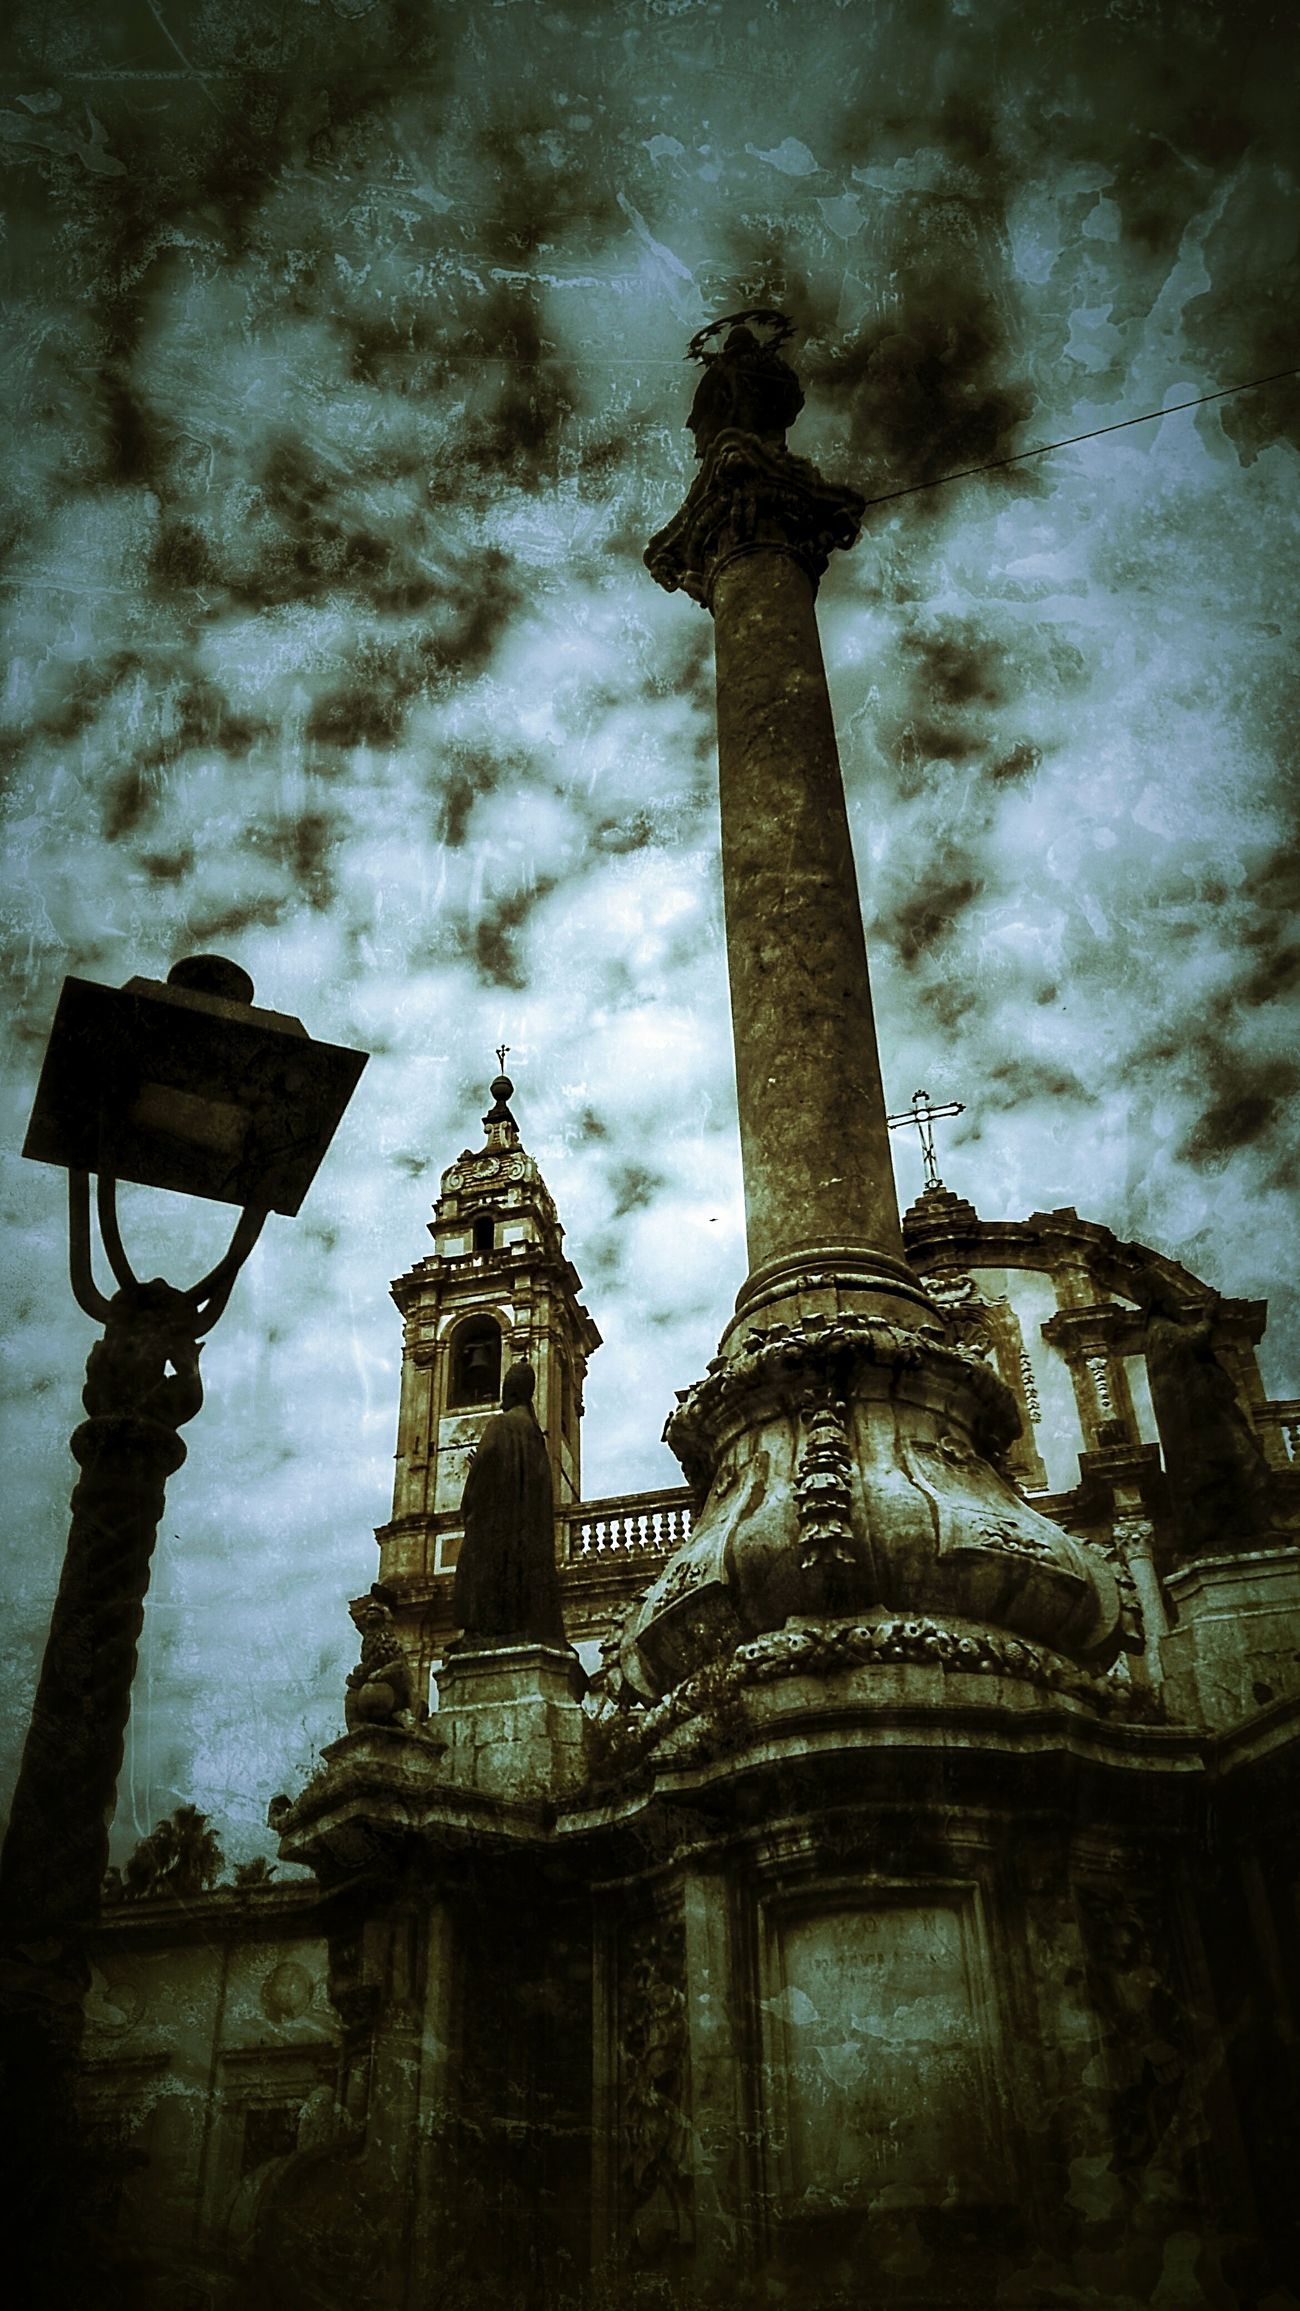 Horror style 😱 Sky Architecture Low Angle View Cloud - Sky Built Structure Travel Destinations No People Building Exterior Outdoors Statue Tree Night City Statues Monuments & Statues City View  Cıty City Life Palermo, Italy Palermo,Sicilia Palermo Shooting City Street Monuments Of The World Statue Photography Statues/sculptures Statue In The City